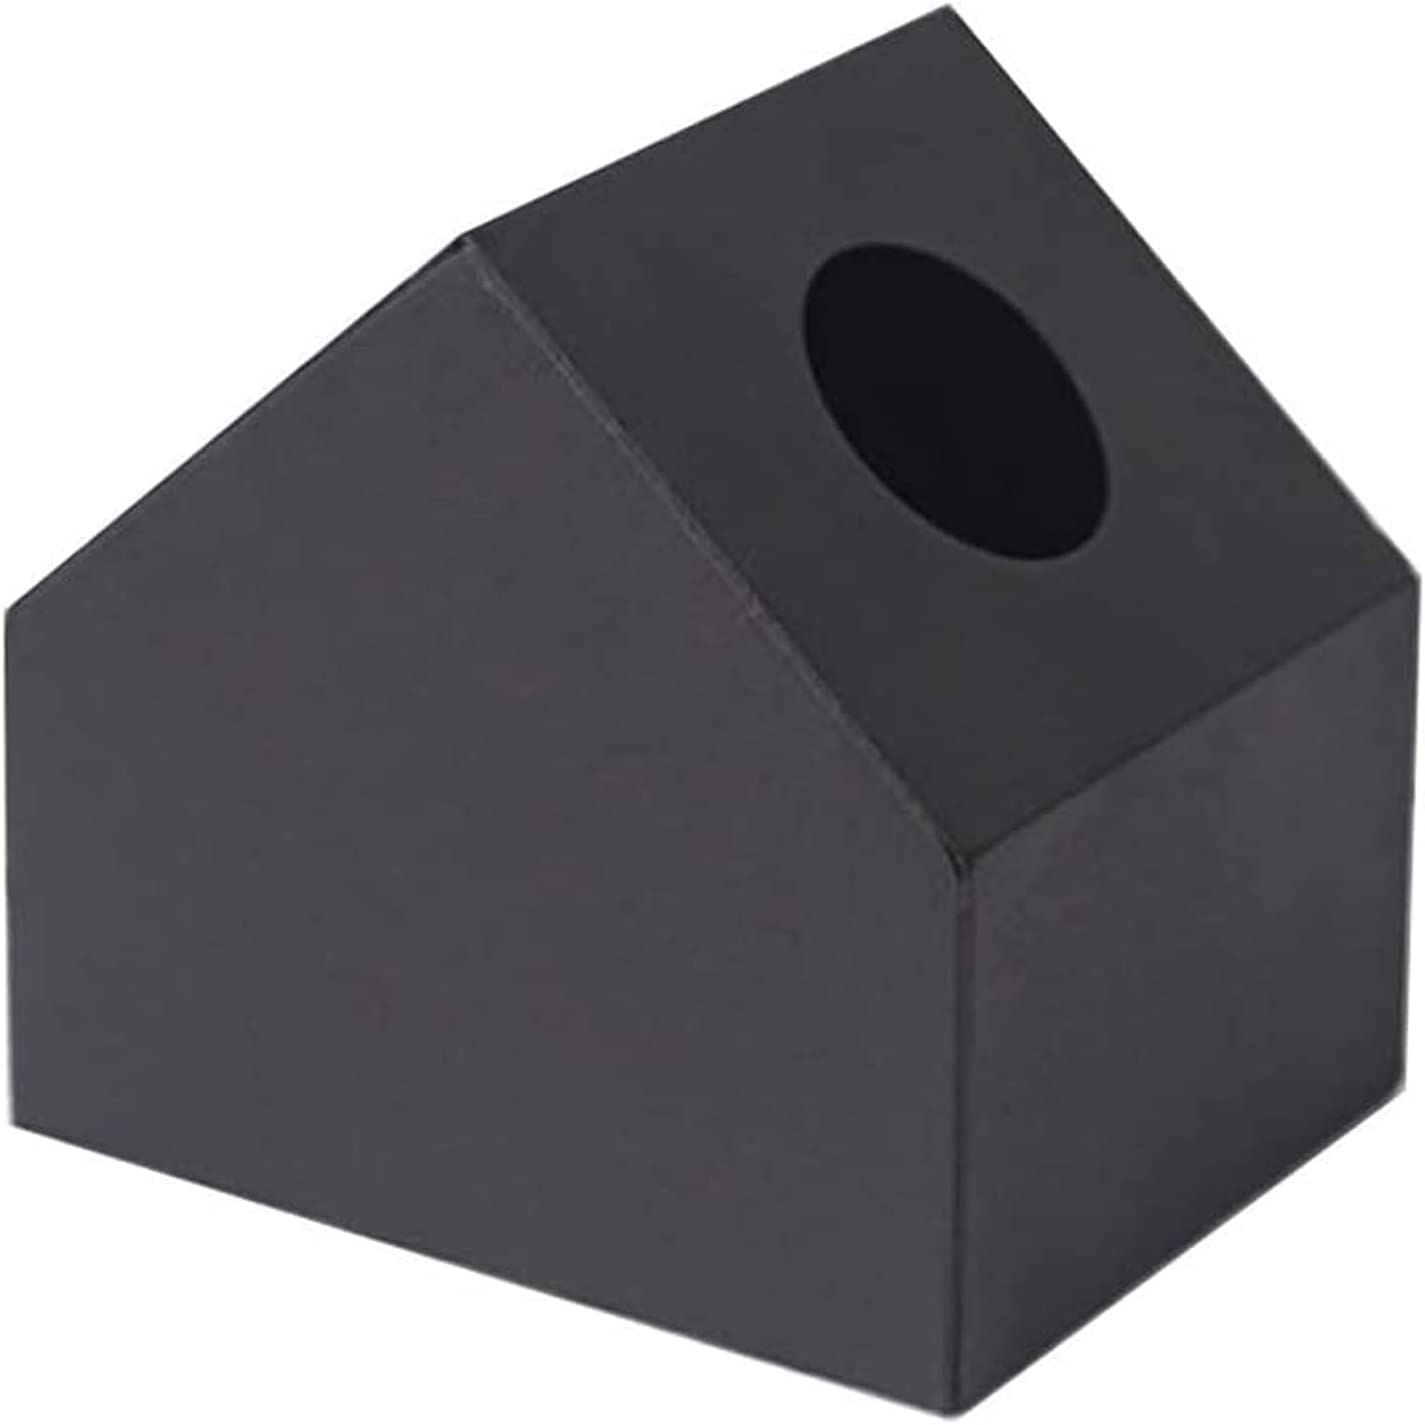 Charlotte Mall YI0877CHANG Tissue Paper Dispenser Quality inspection C Cover Box